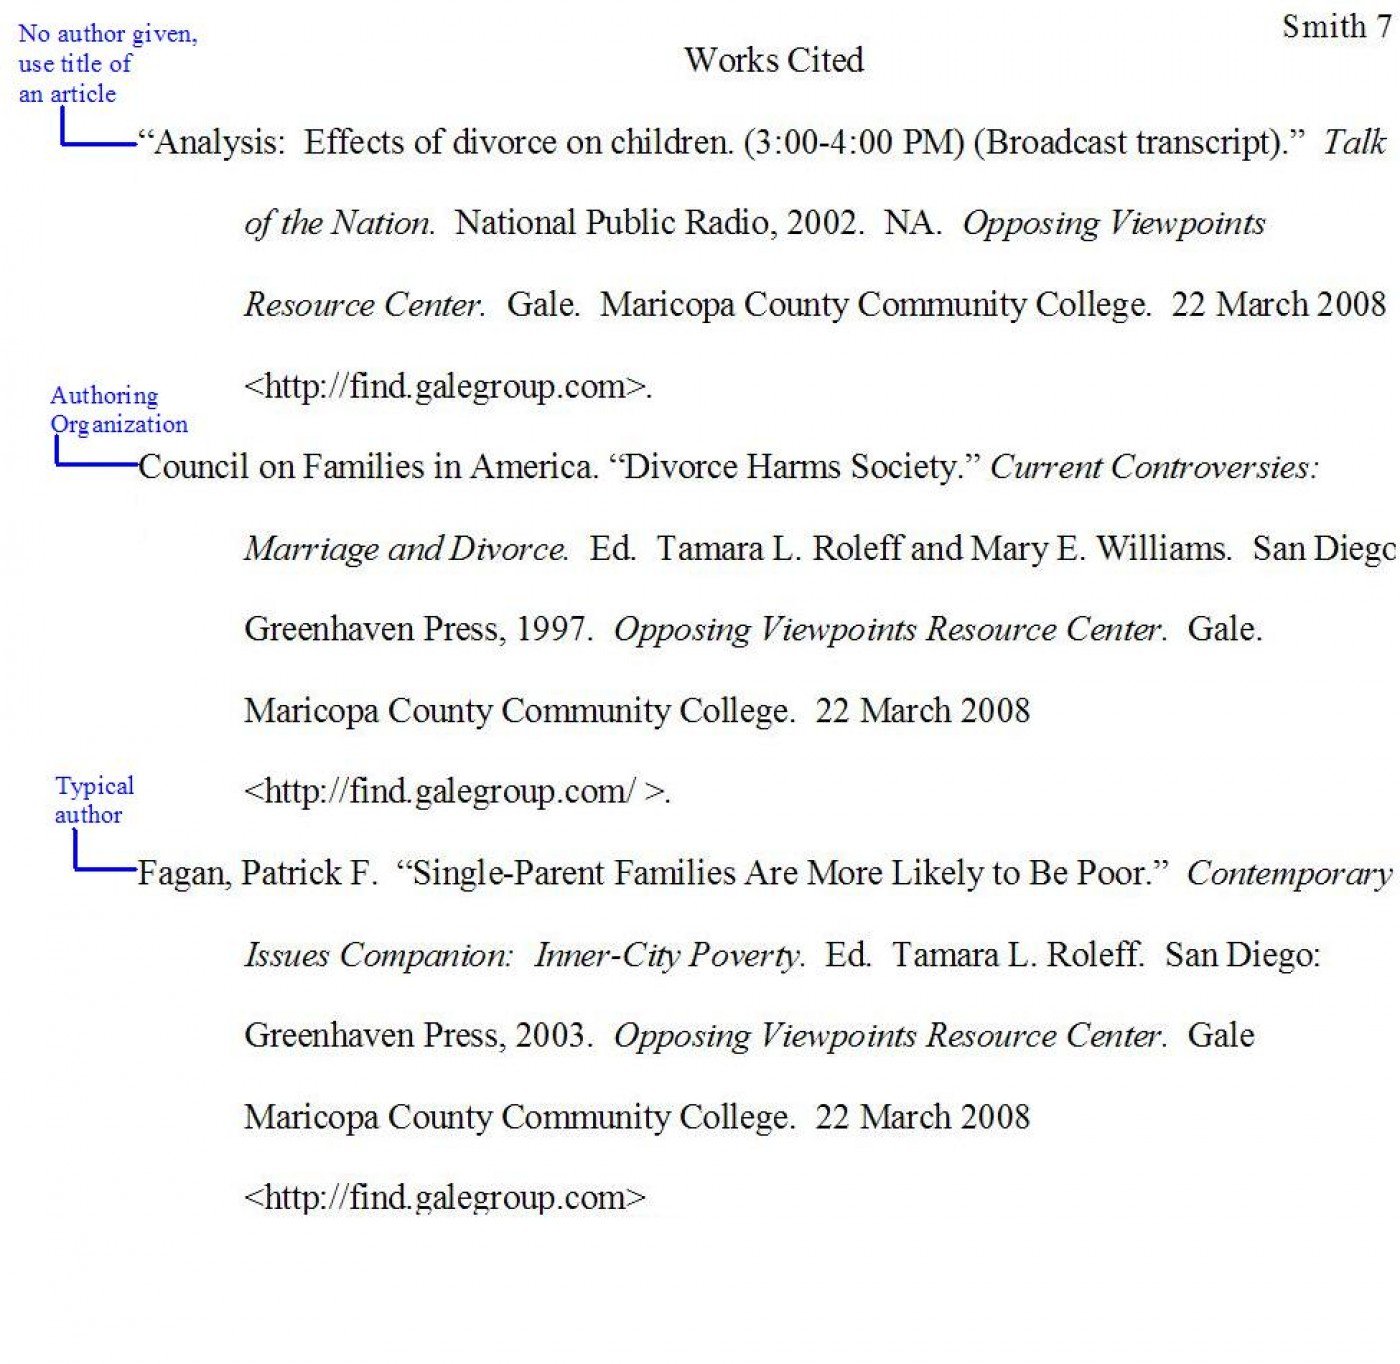 006 Cited Research Paper Samplewrkctd Archaicawful Works Mla Example 1400